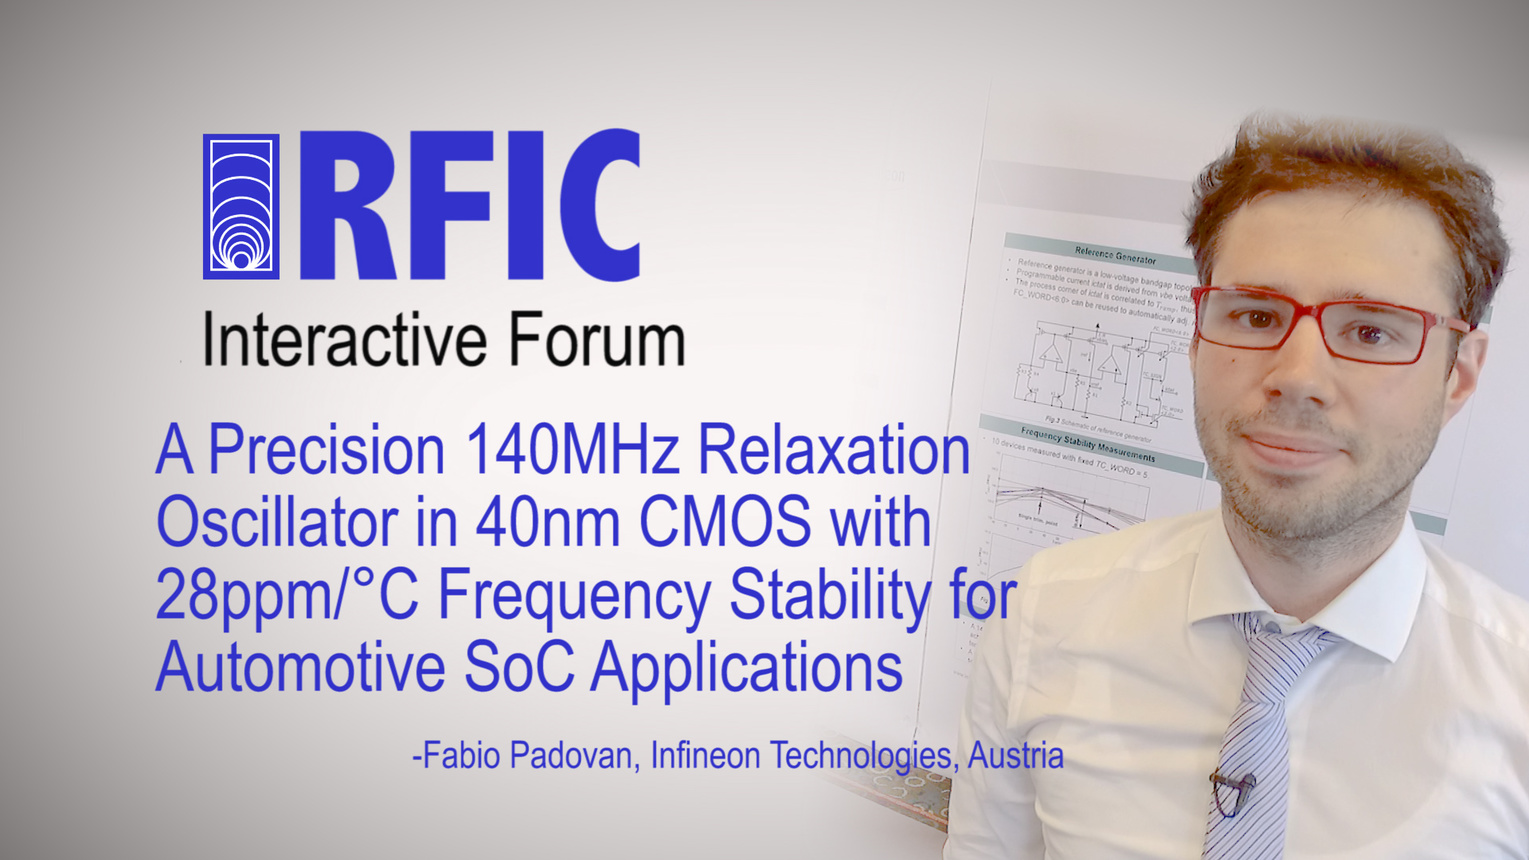 A Precision 140MHz Relaxation Oscillator in 40nm CMOS with 28ppm/C Frequency Stability for Automotive SoC Applications: RFIC Interactive Forum 2017